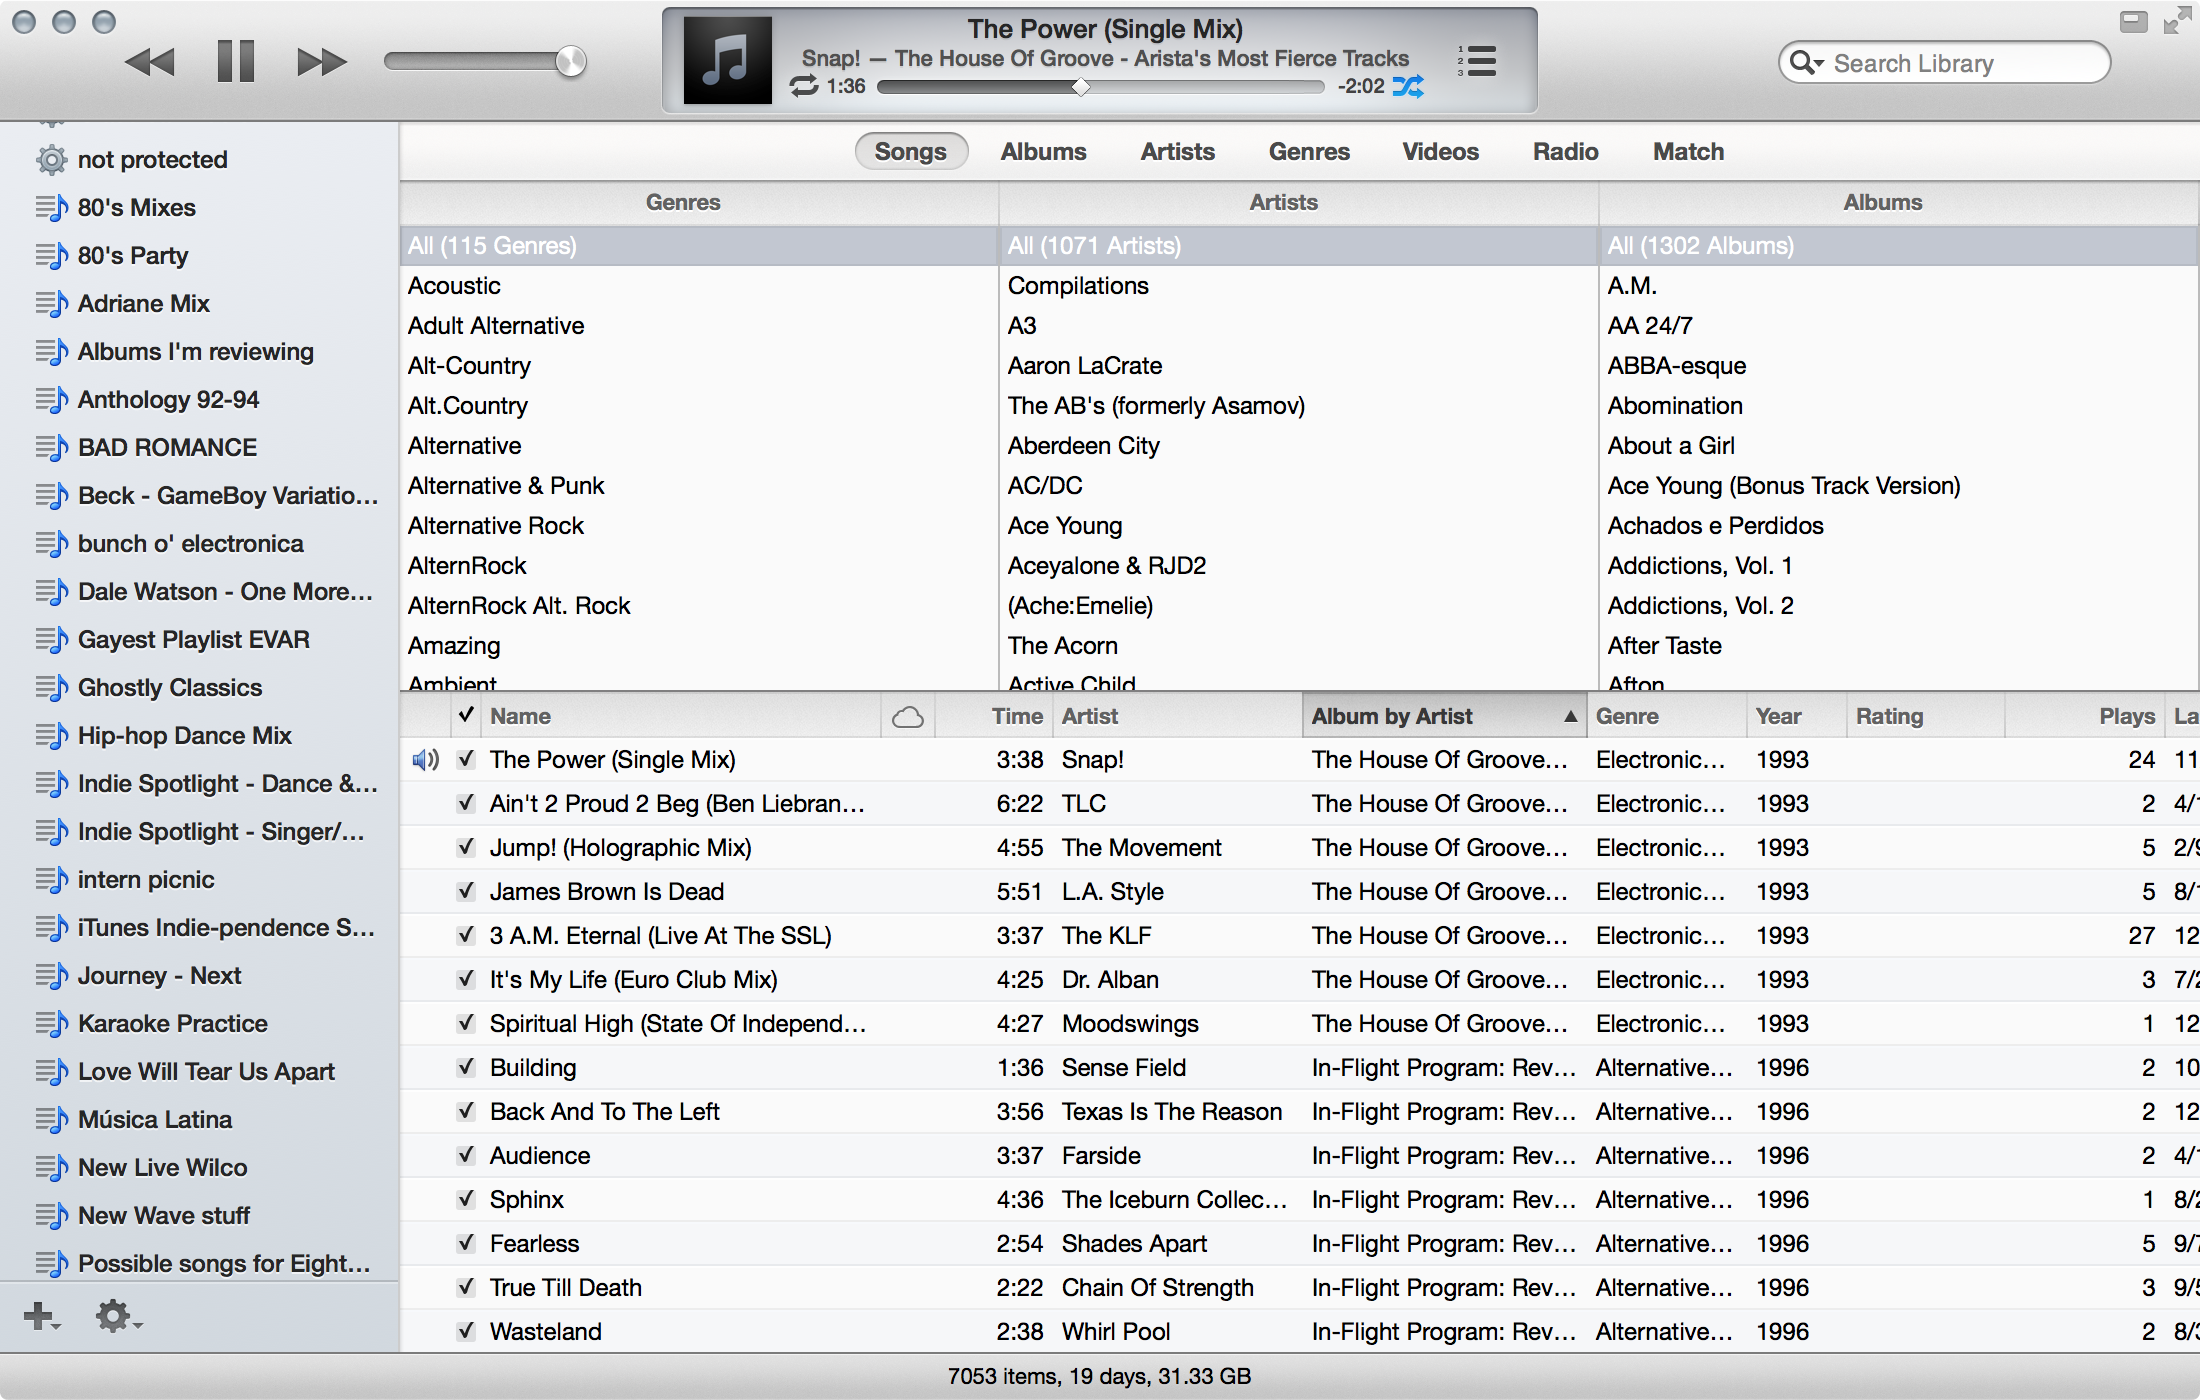 Turning on the sidebar and status bar should get you mostly back to the old iTunes 10 interface, if you prefer.